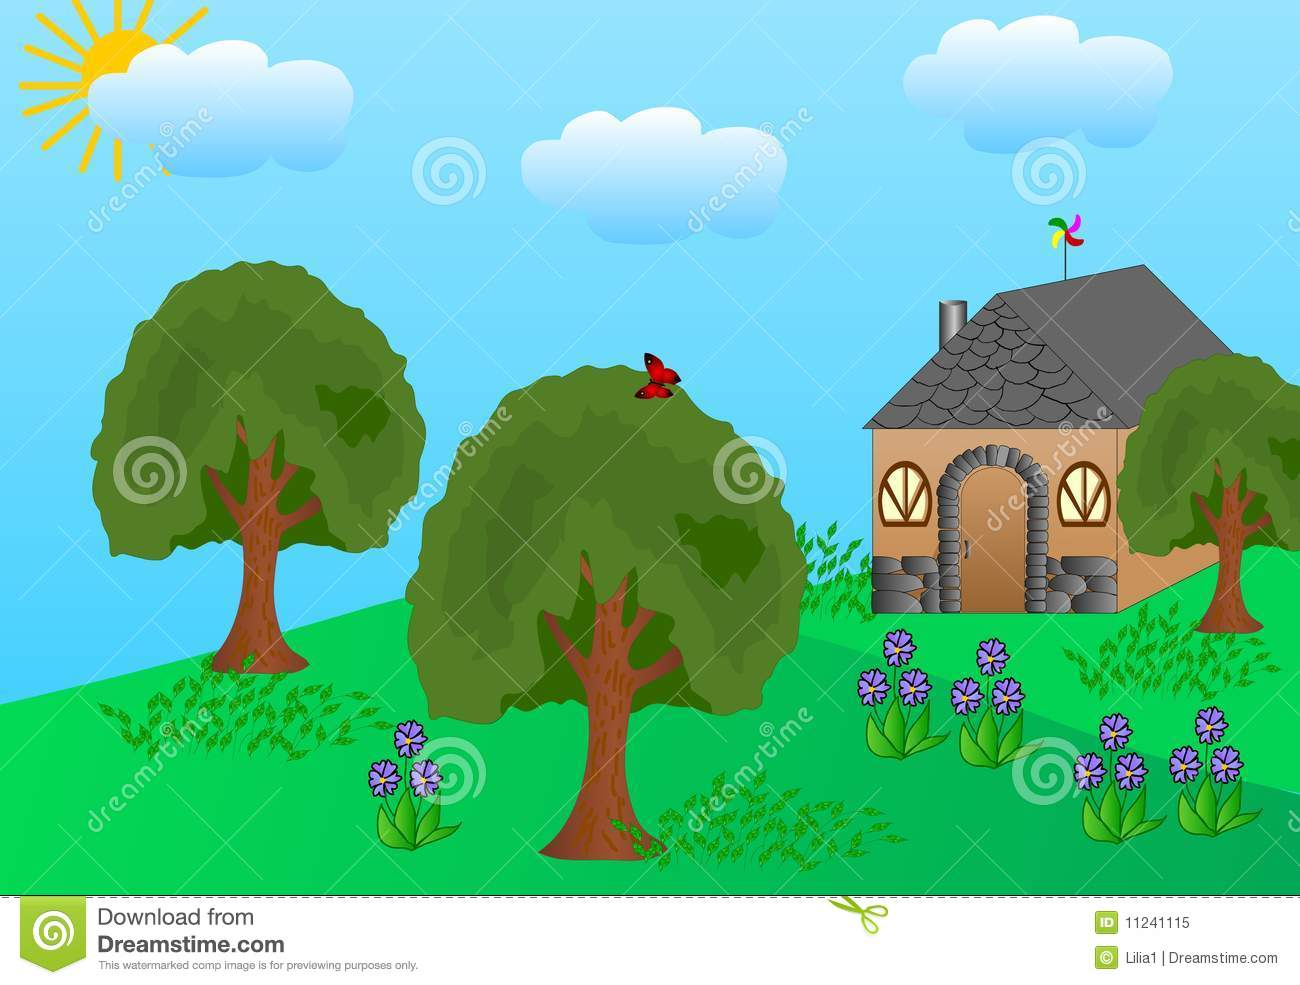 My house with garden drawing for kids - House With Little Garden Royalty Free Stock Photo Image House Garden Clipart